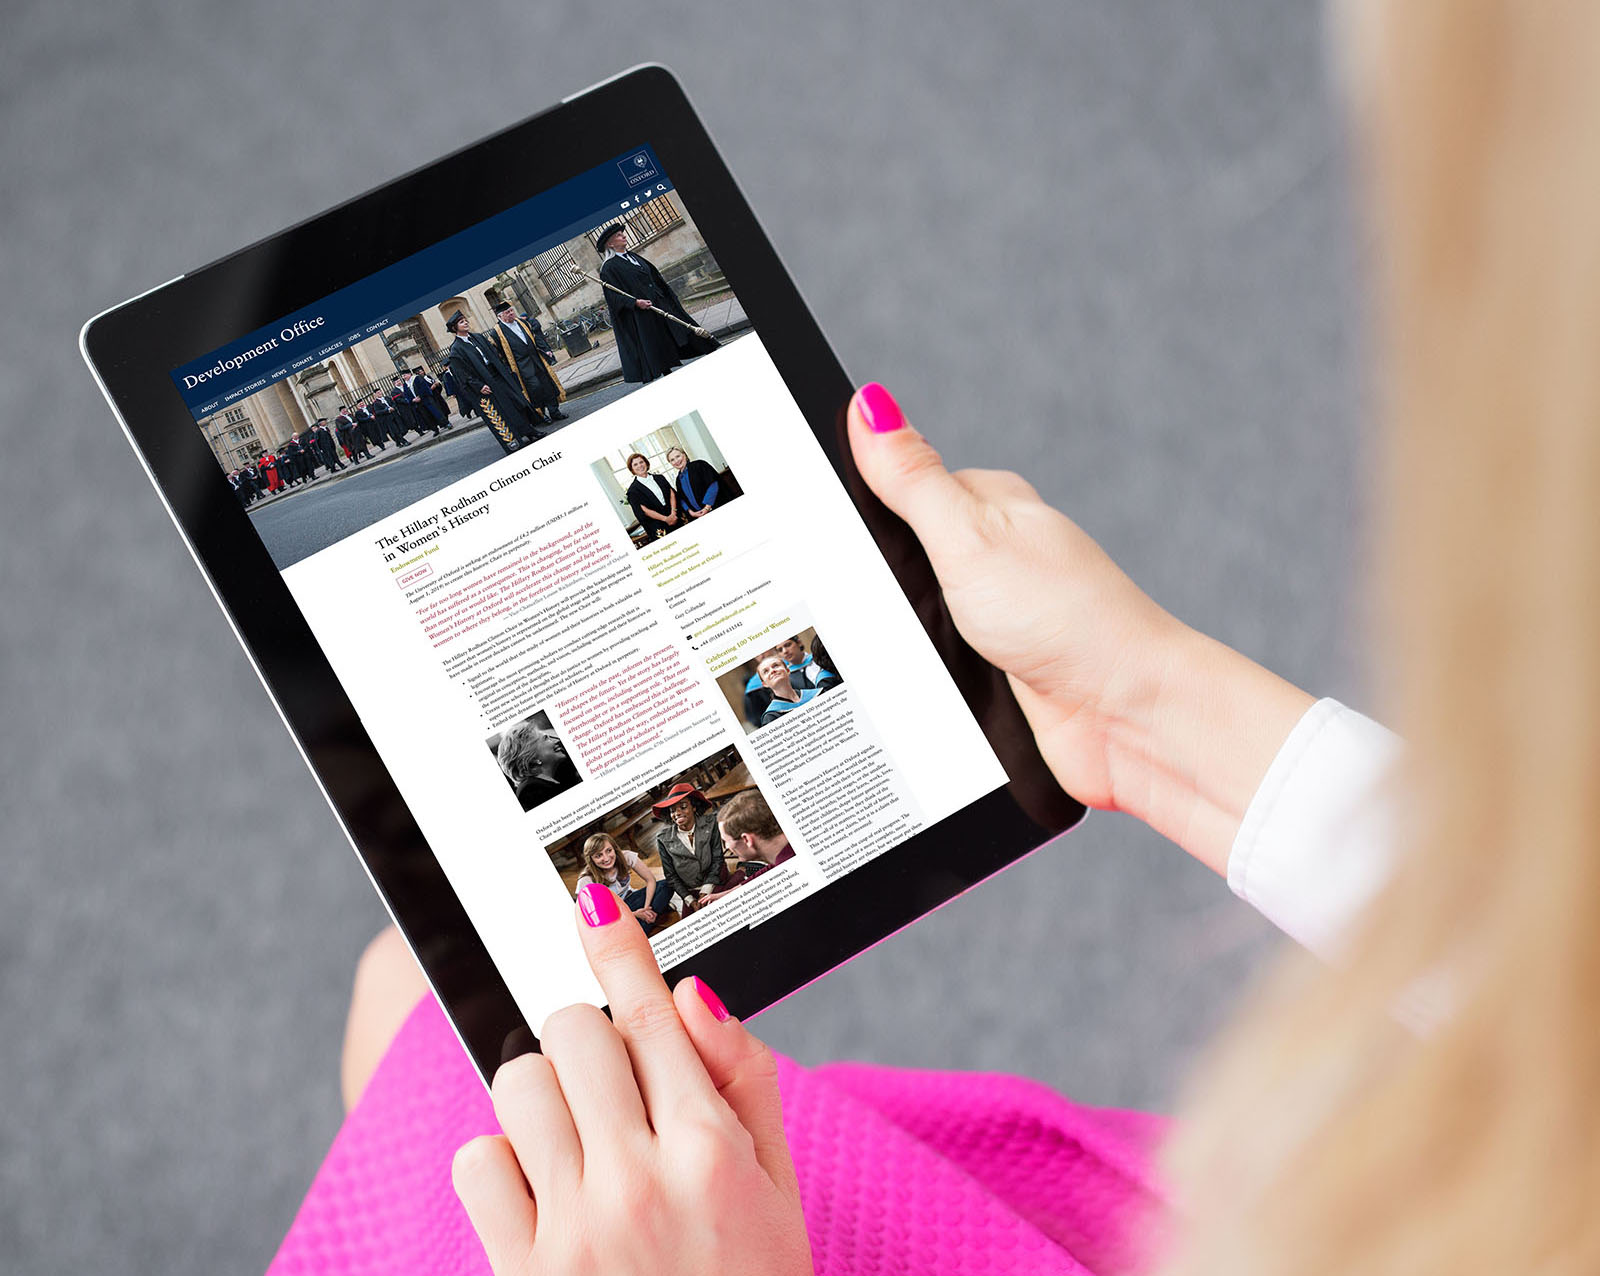 hillary clinton, university of oxford,higher education landing page design